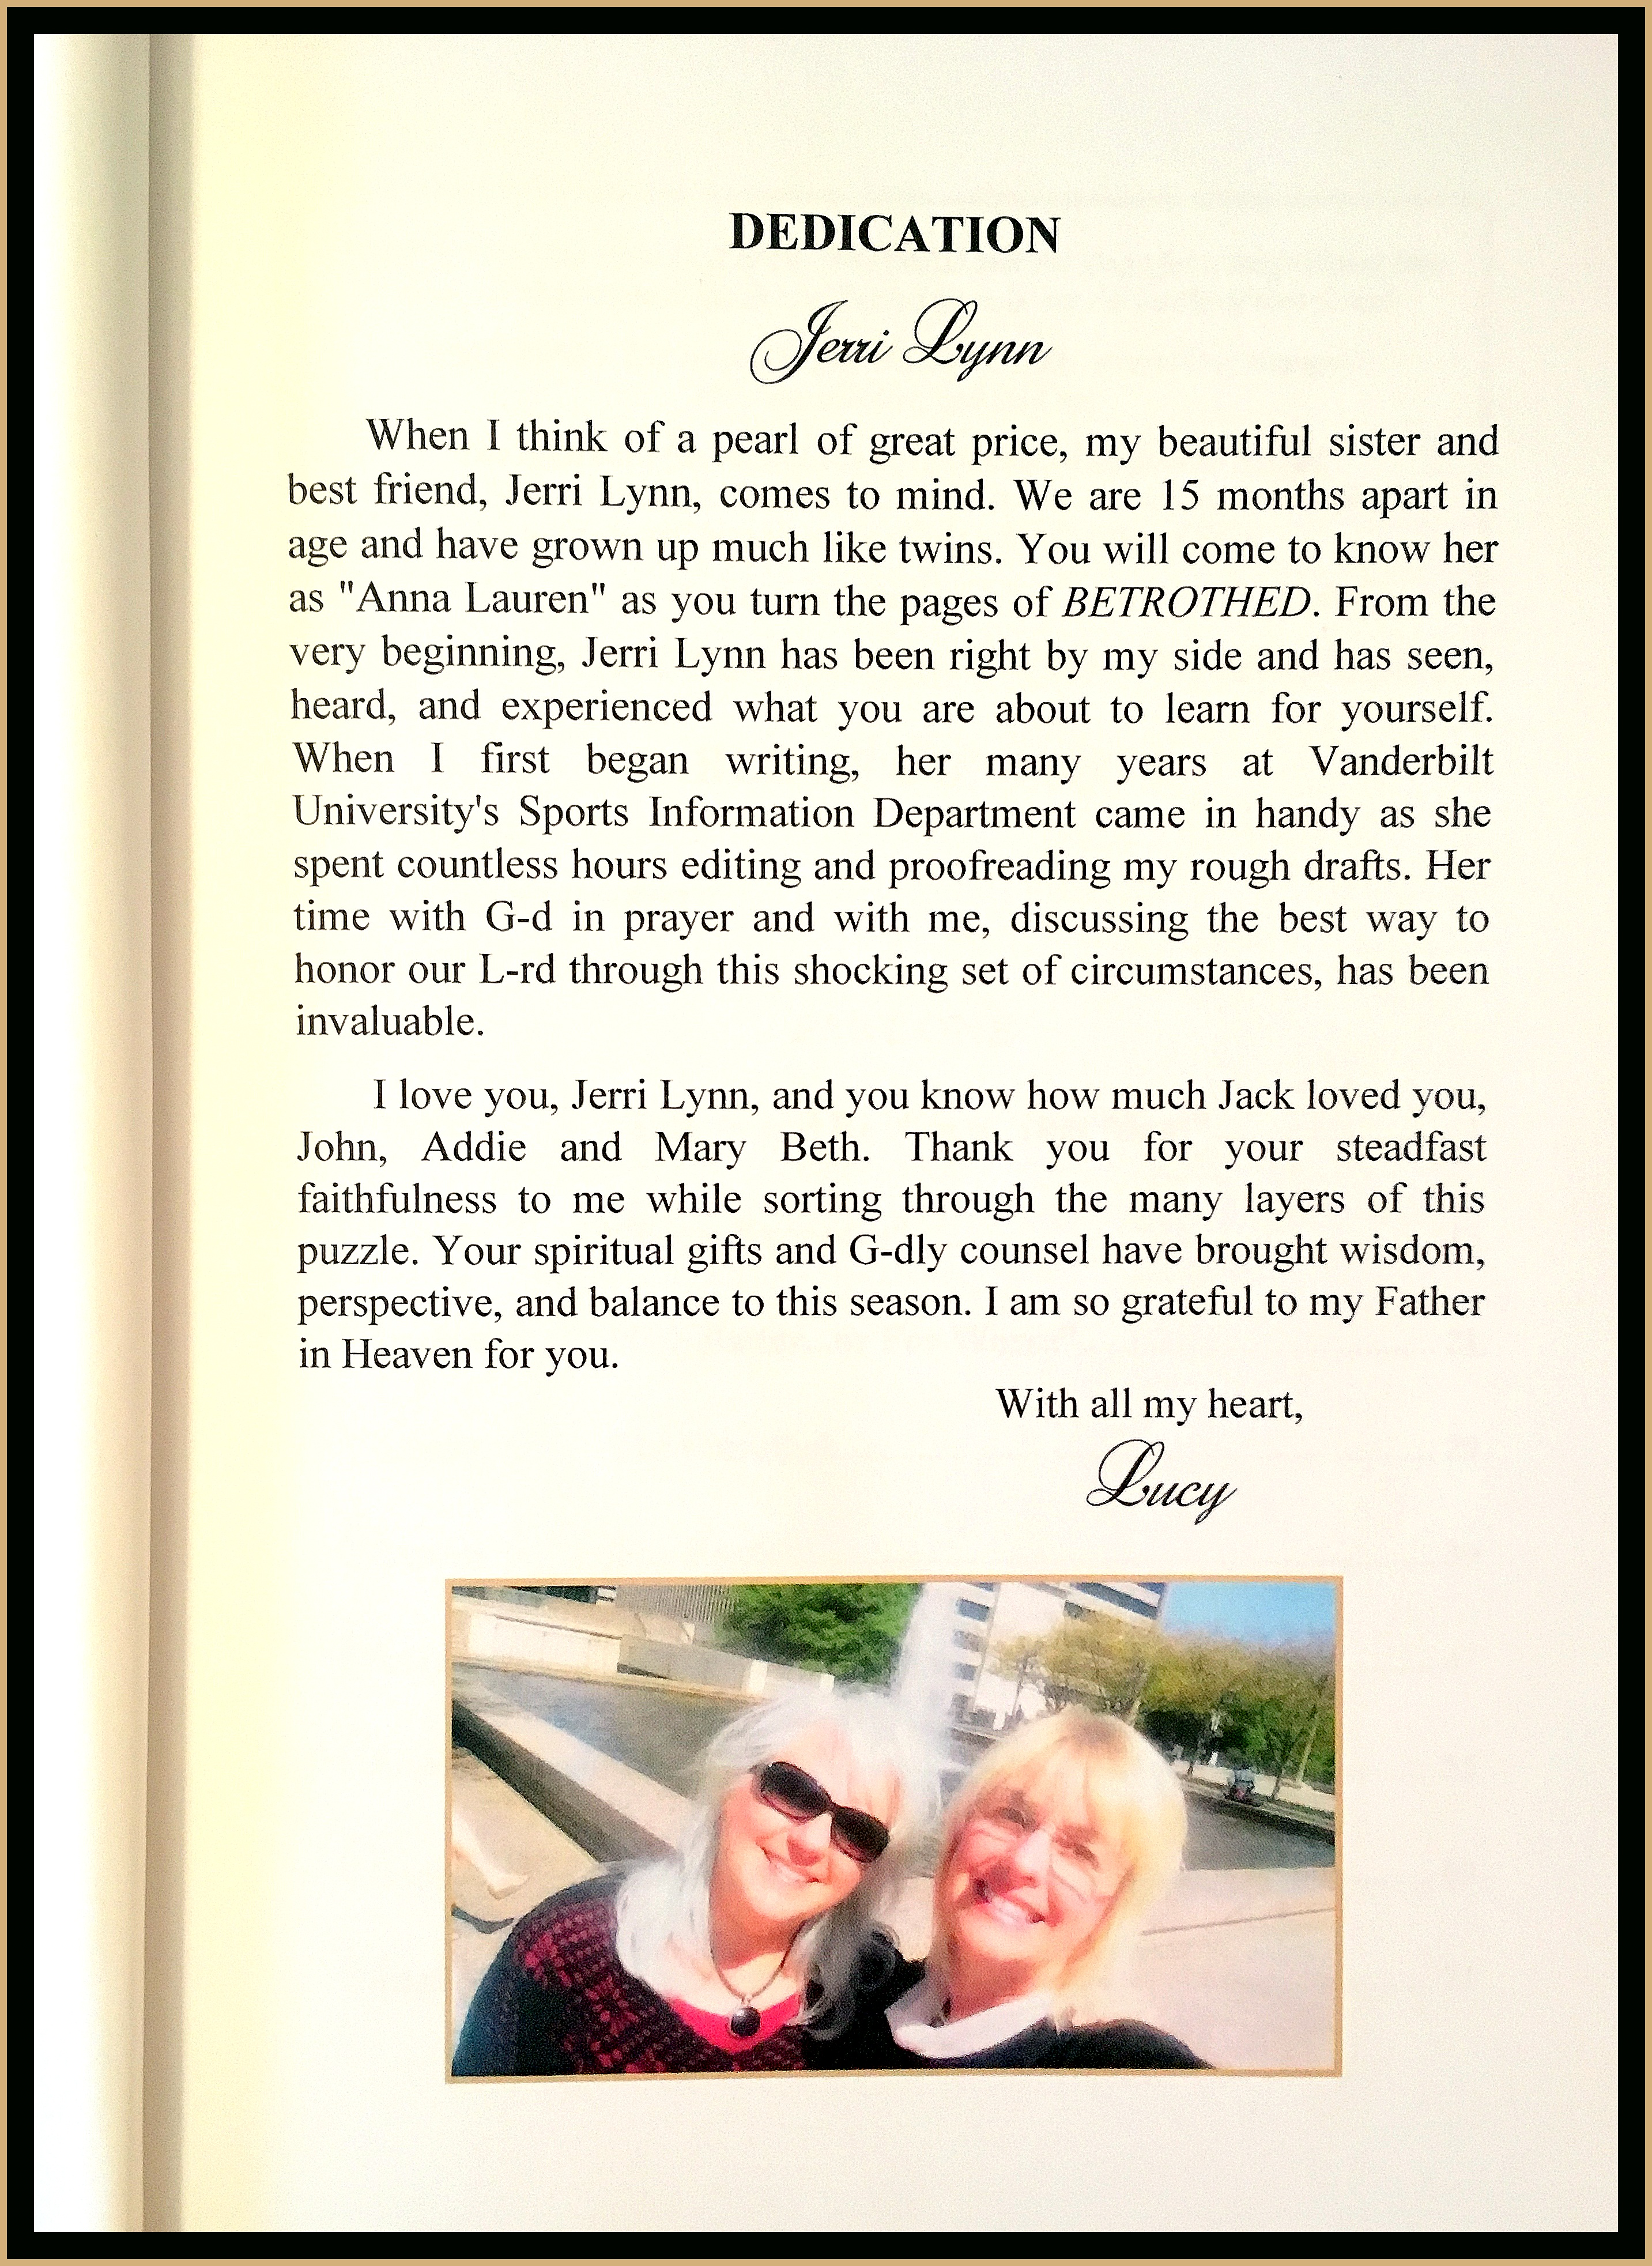 BETROTHED Dedication to Jerri Lynn framed in Gold for blog